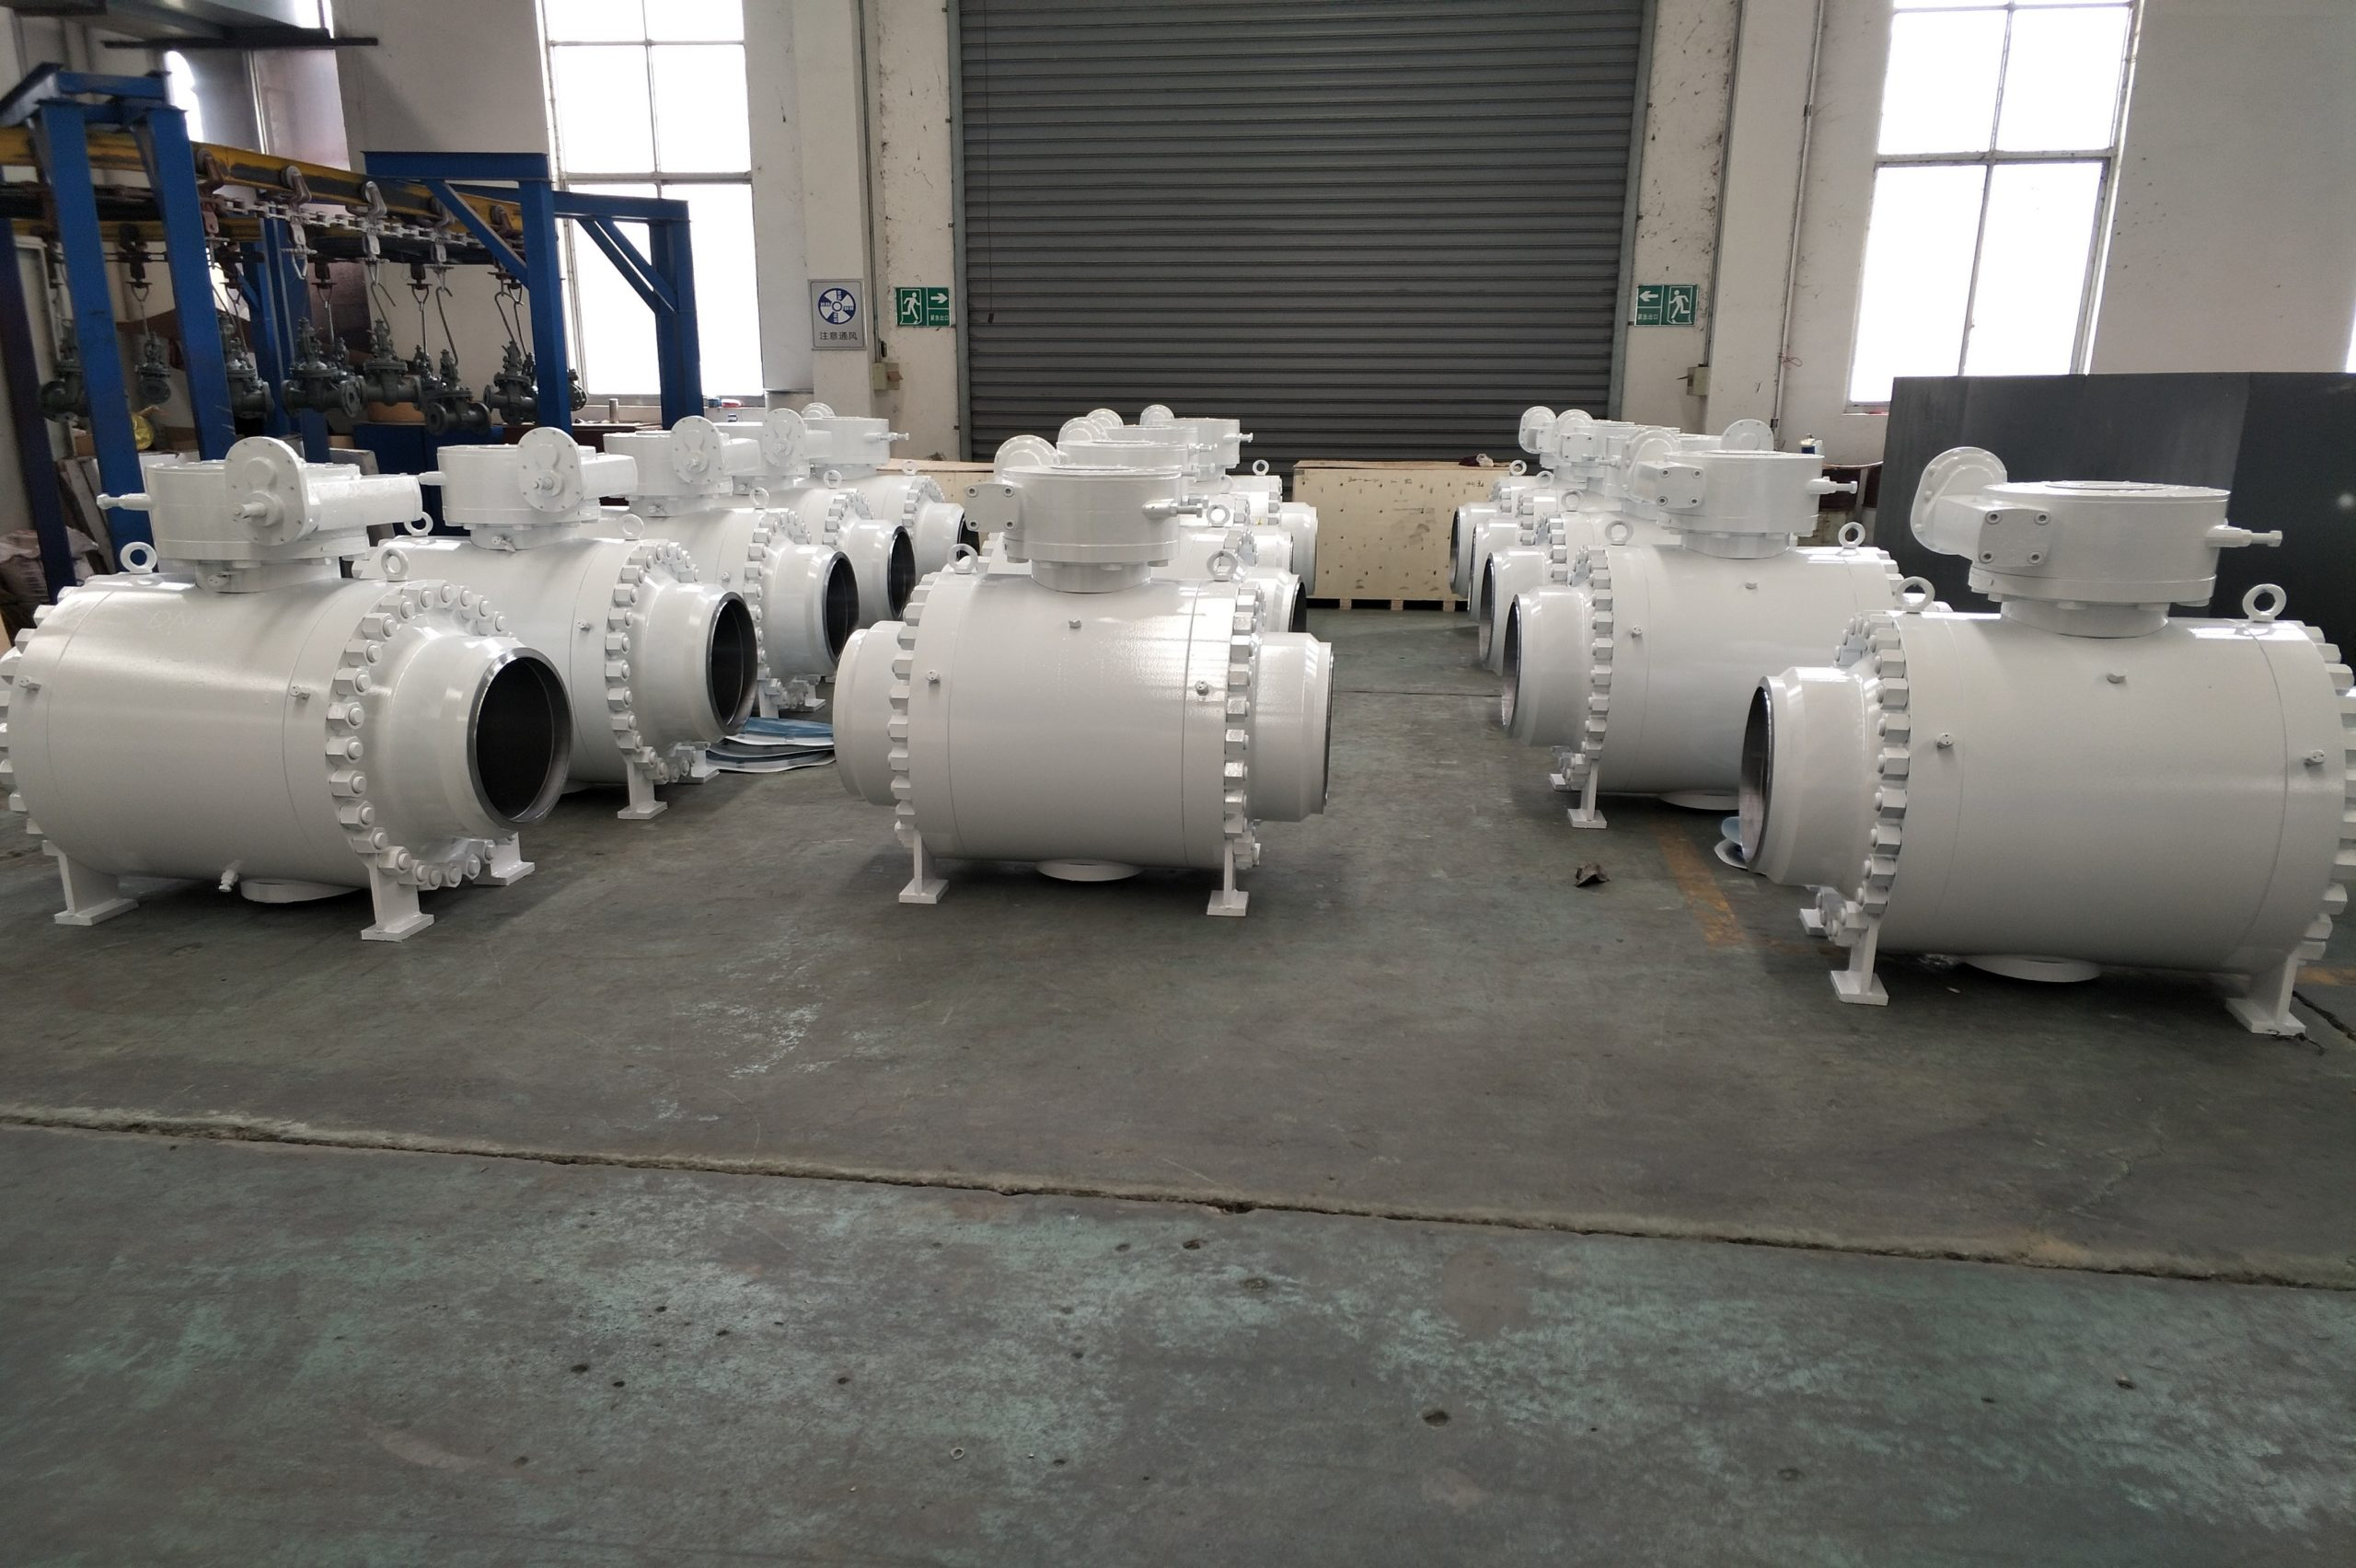 Three rows of white coloured ball valves arranged at a workshop by an industrial valve manufacturer in india